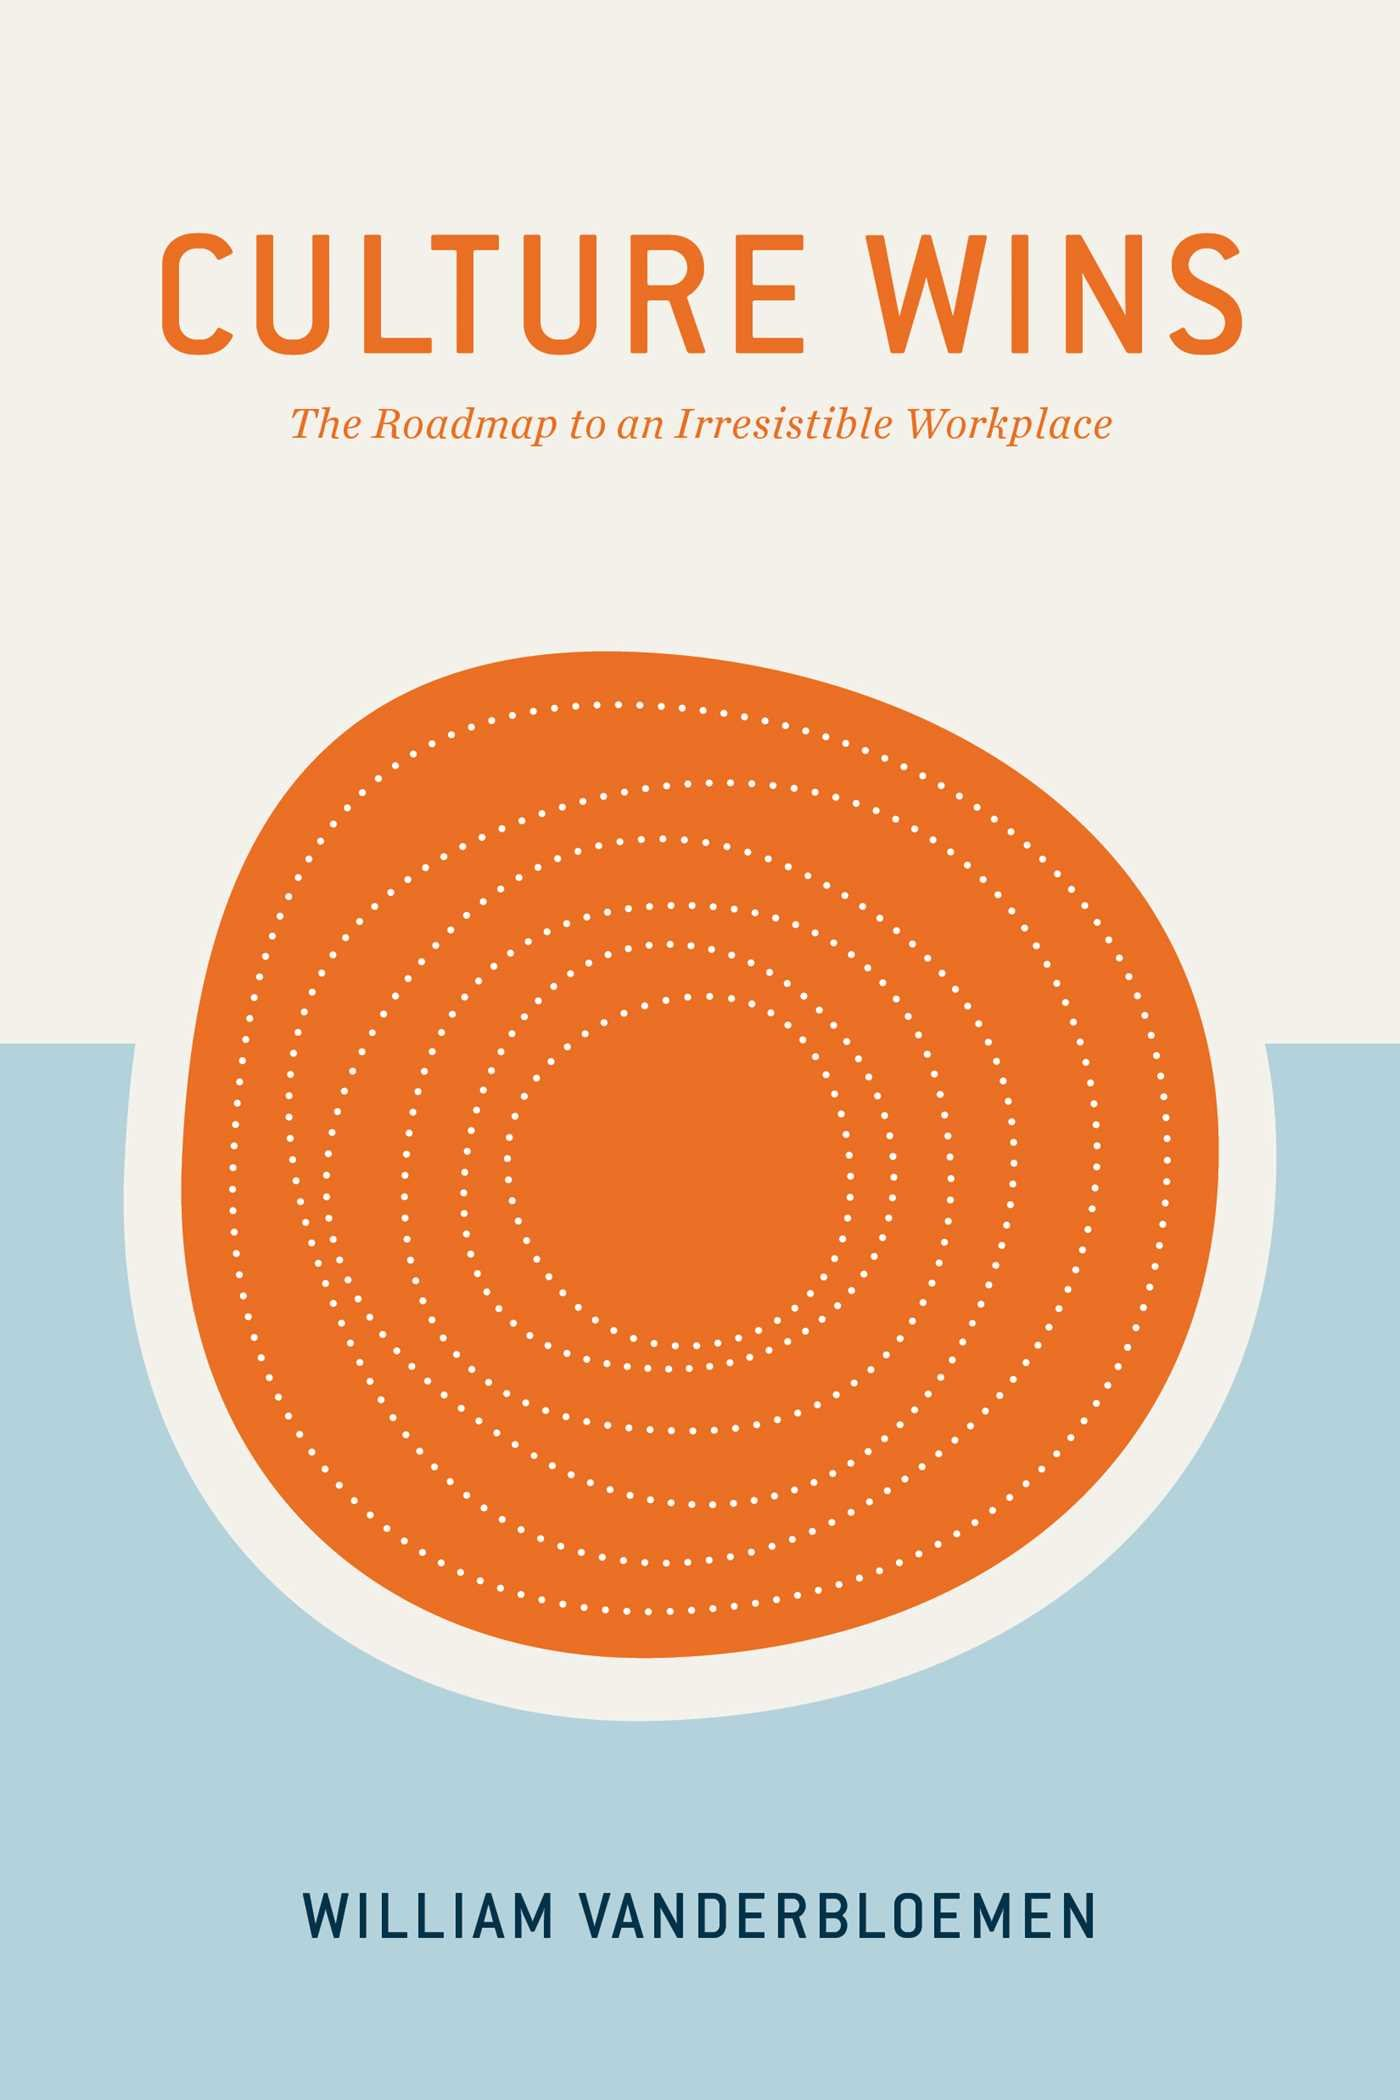 Culture Wins: The Roadmap to an Irresistible Workplace pdf